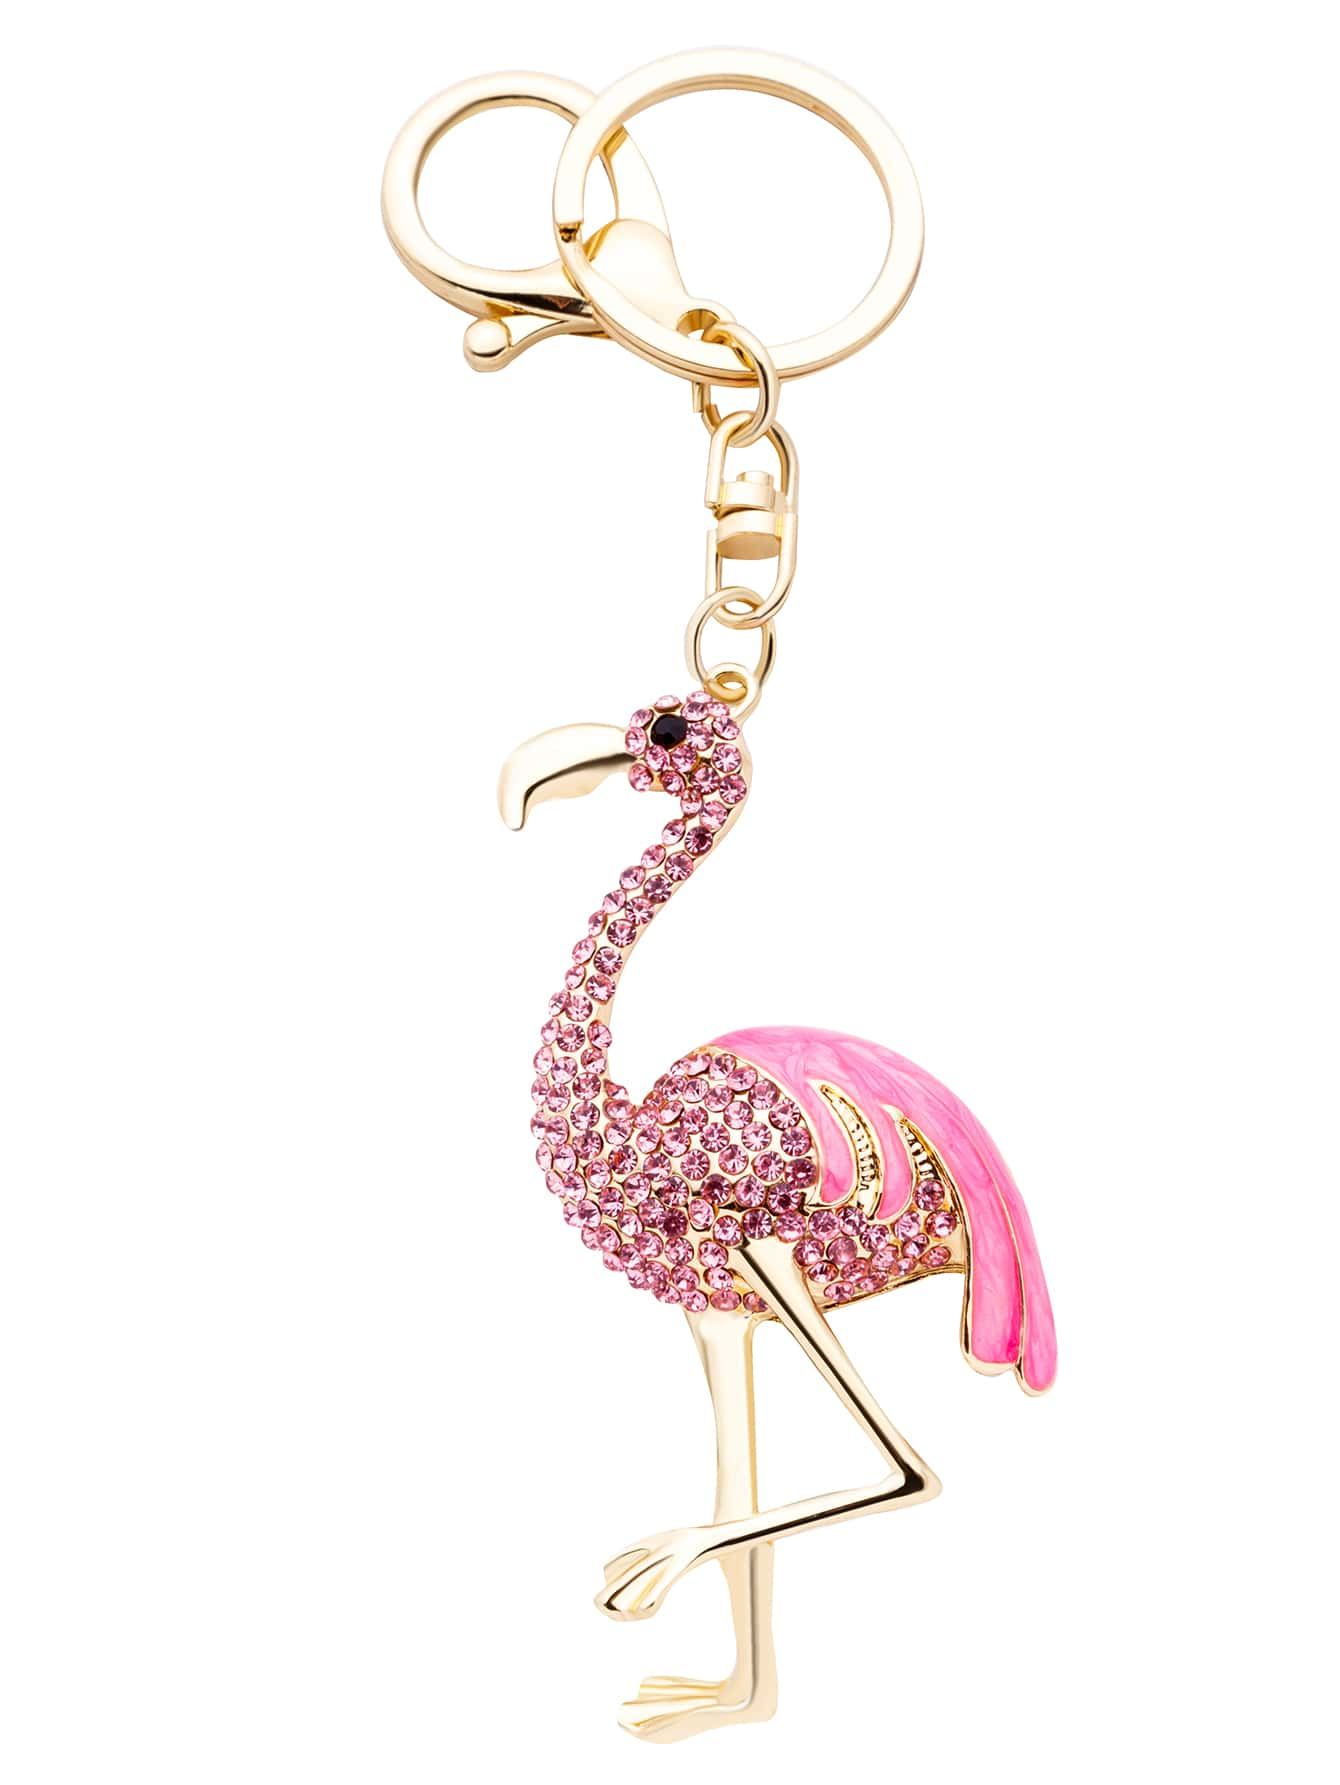 Pink Flamingo Rhinestone Encrusted KeychainPink Flamingo Rhinestone Encrusted Keychain<br><br>color: Pink<br>size: None